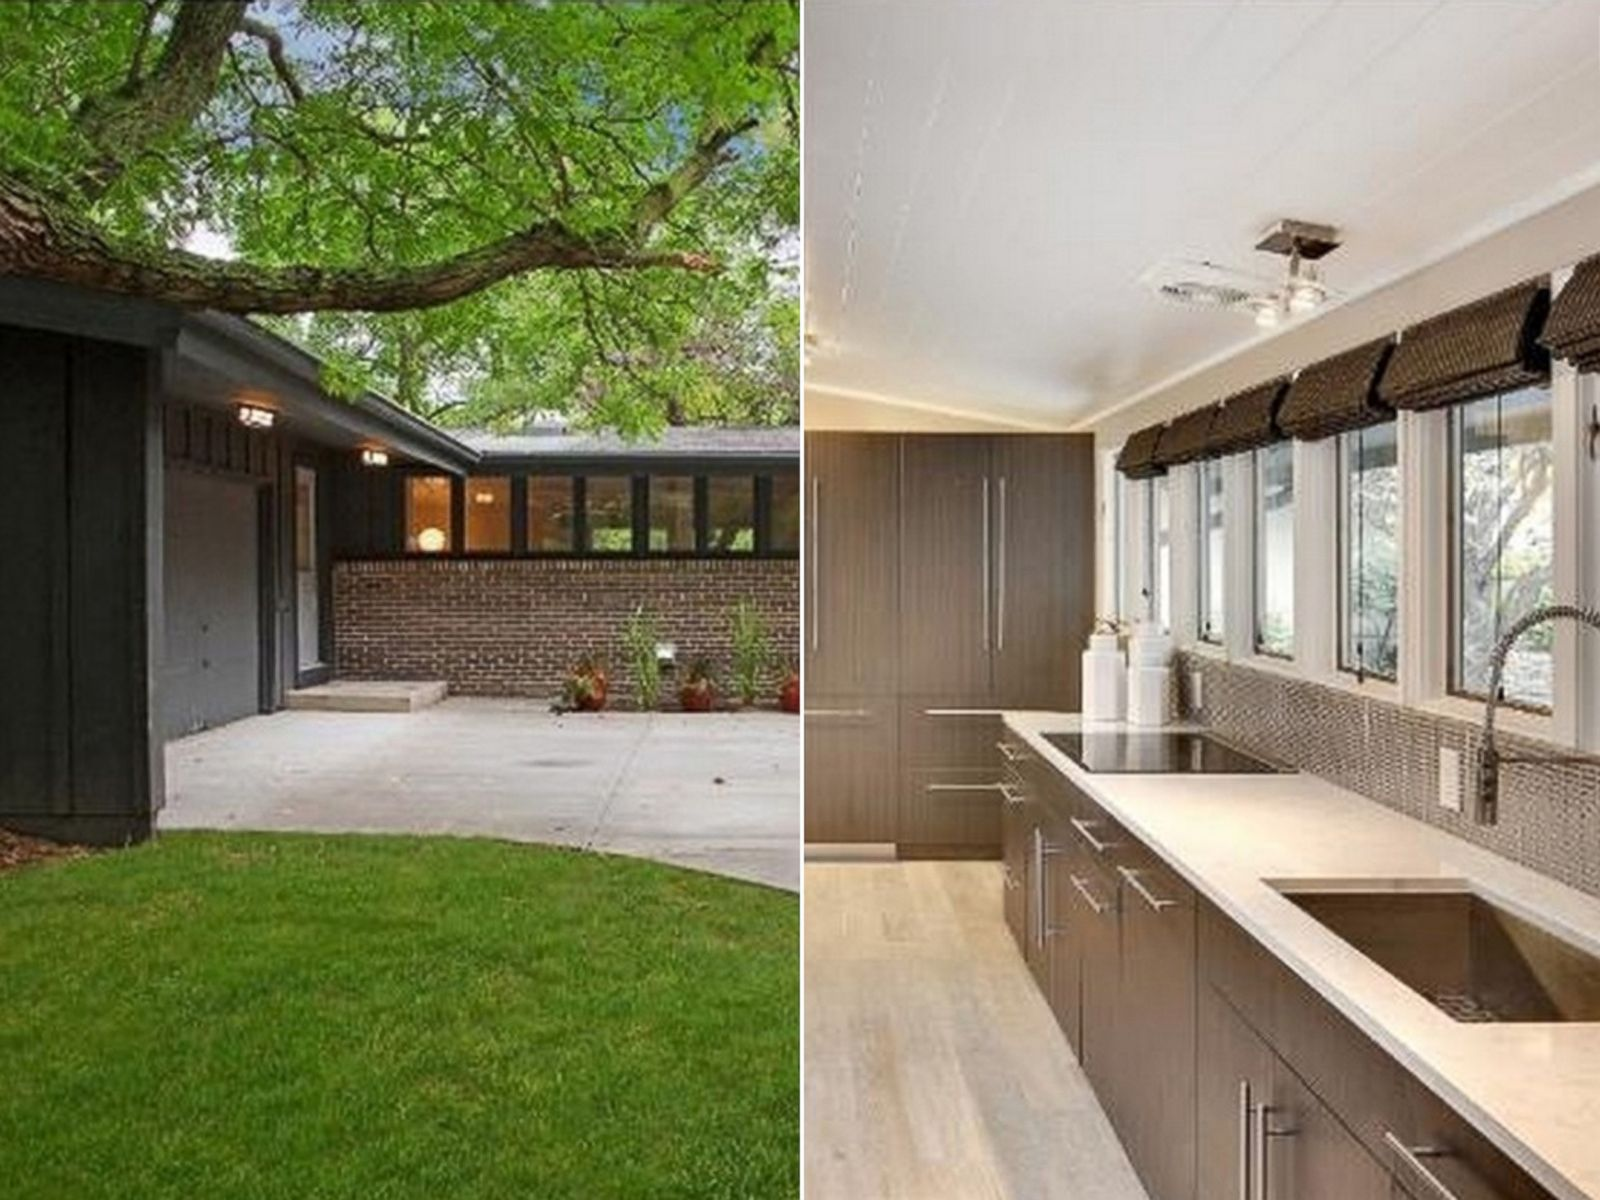 Mid century homes for sale photos image 2 abc news for Modern homes for sale mn